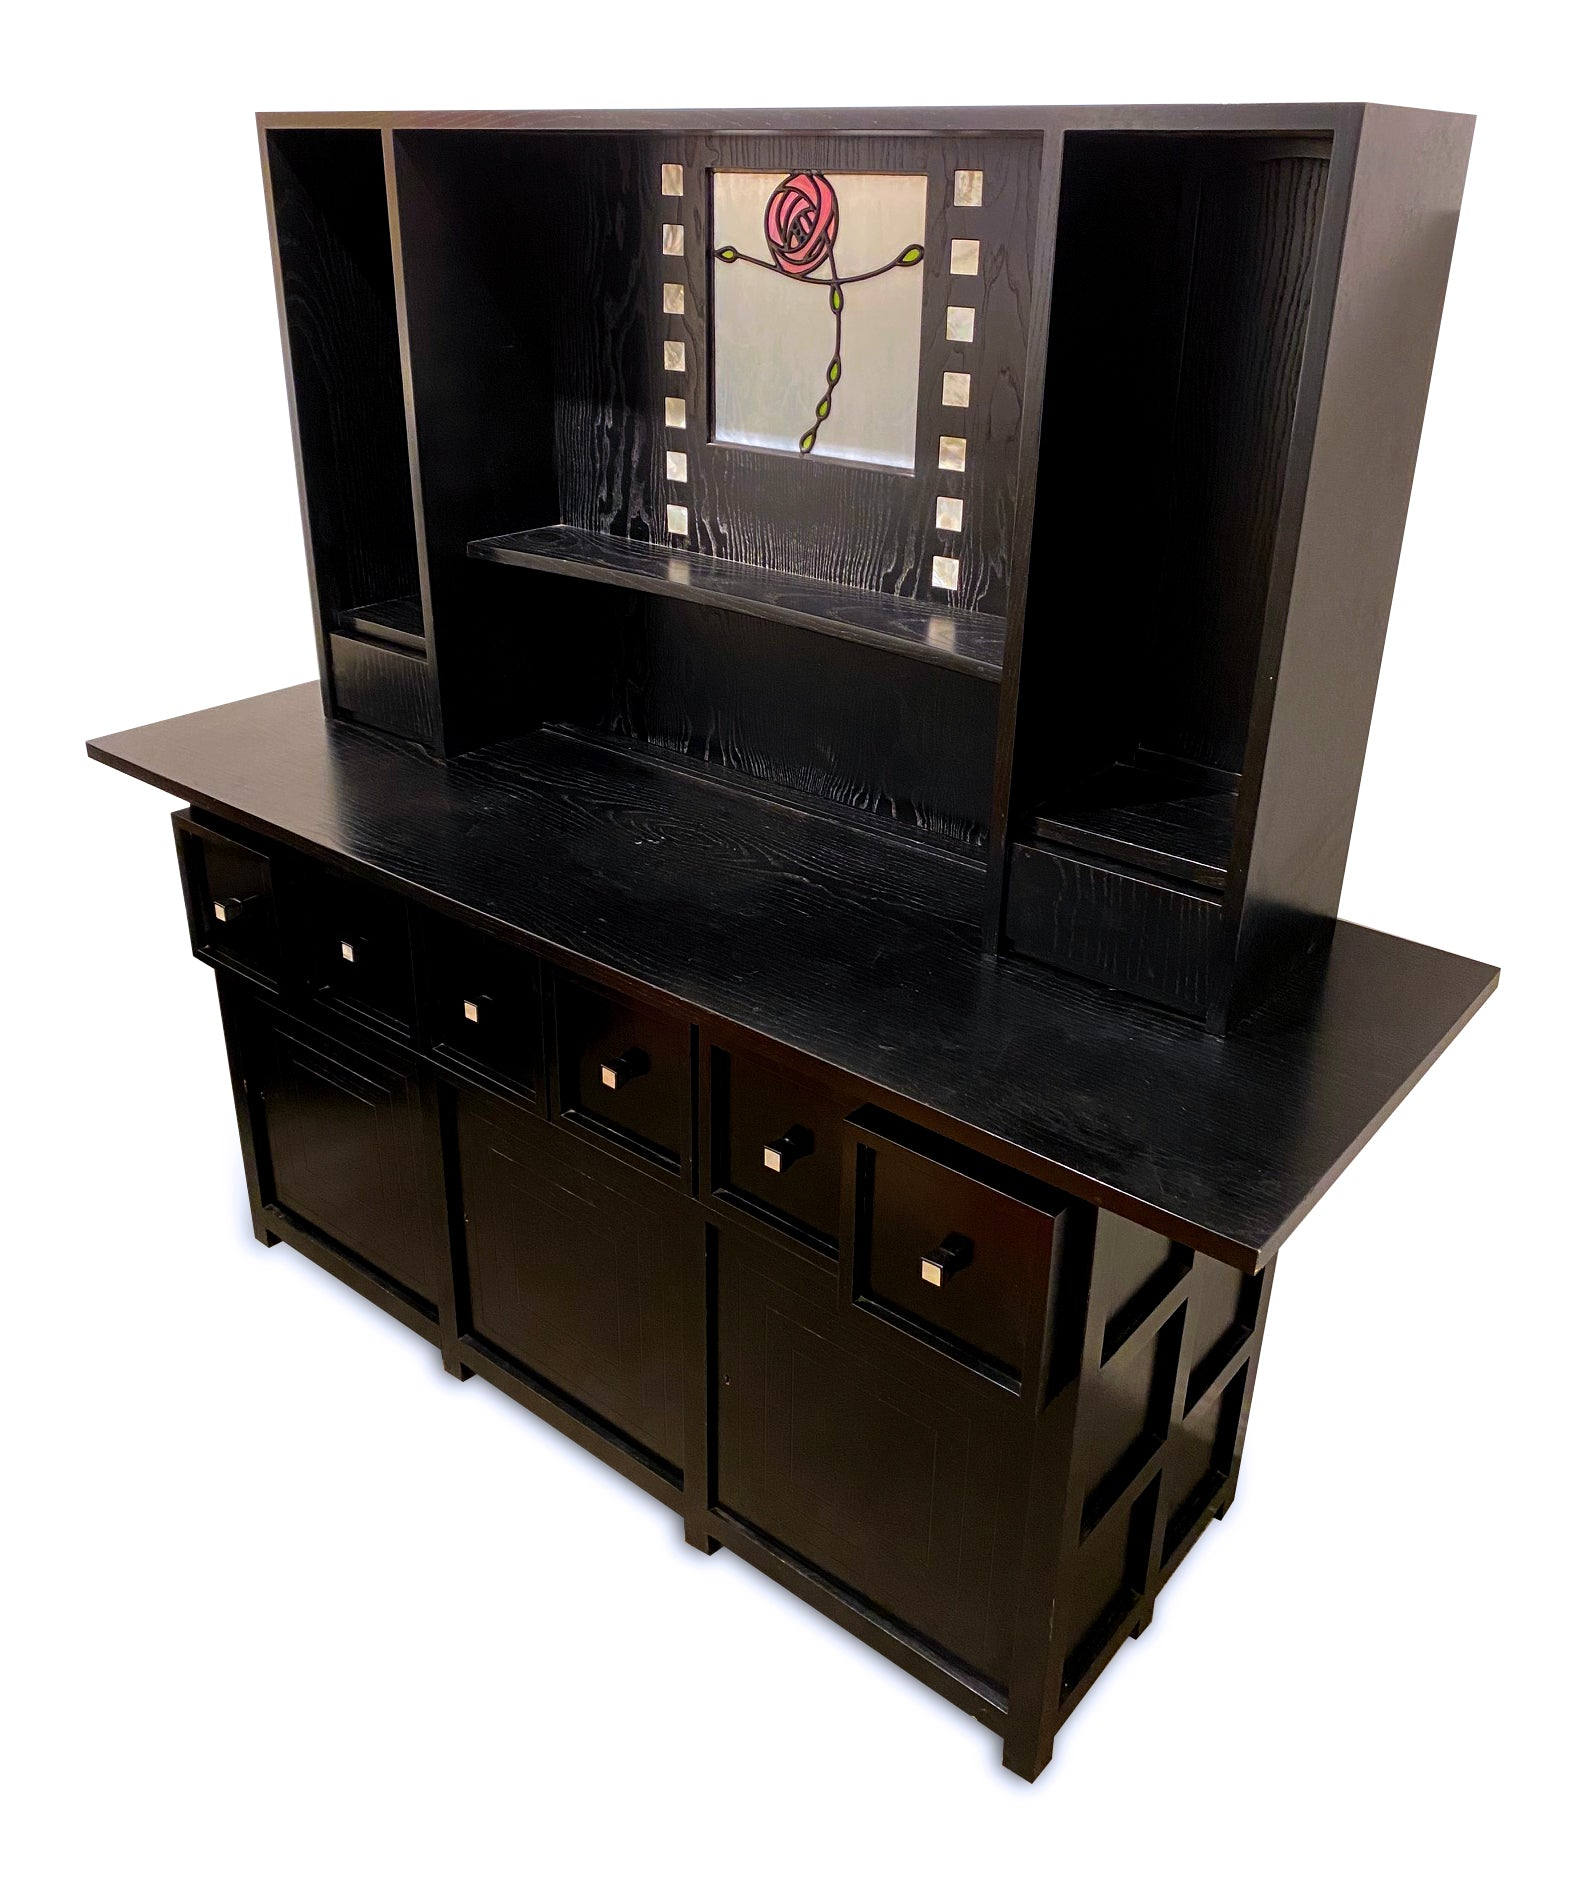 An ebonised and leaded glass cabinet after Charles Rennie McIntosh made by Cassina